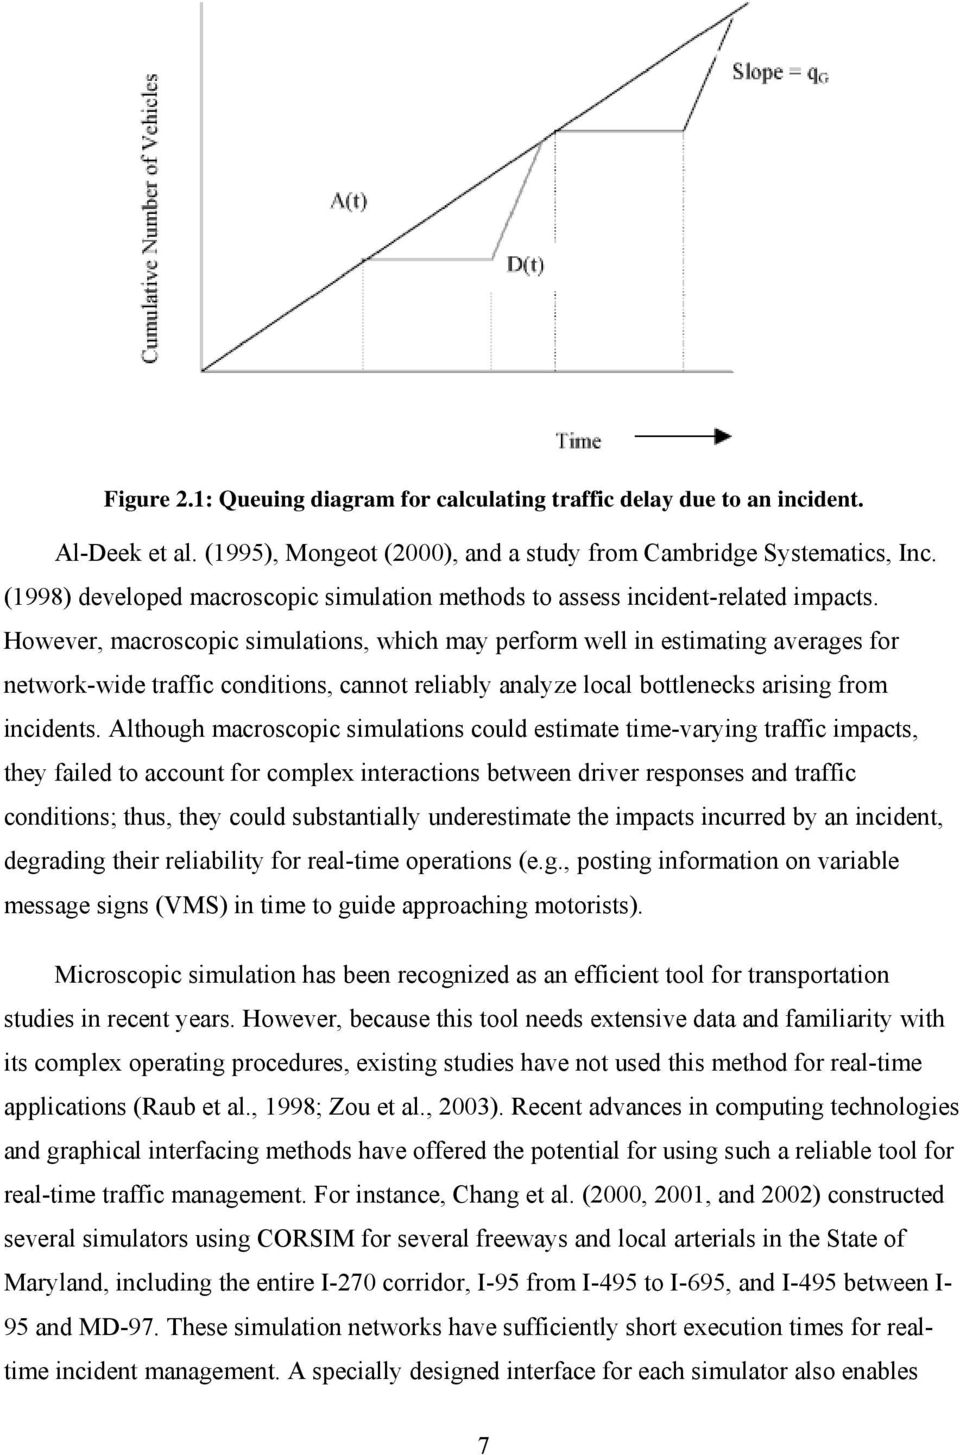 However, macroscopic simulations, which may perform well in estimating averages for network-wide traffic conditions, cannot reliably analyze local bottlenecks arising from incidents.